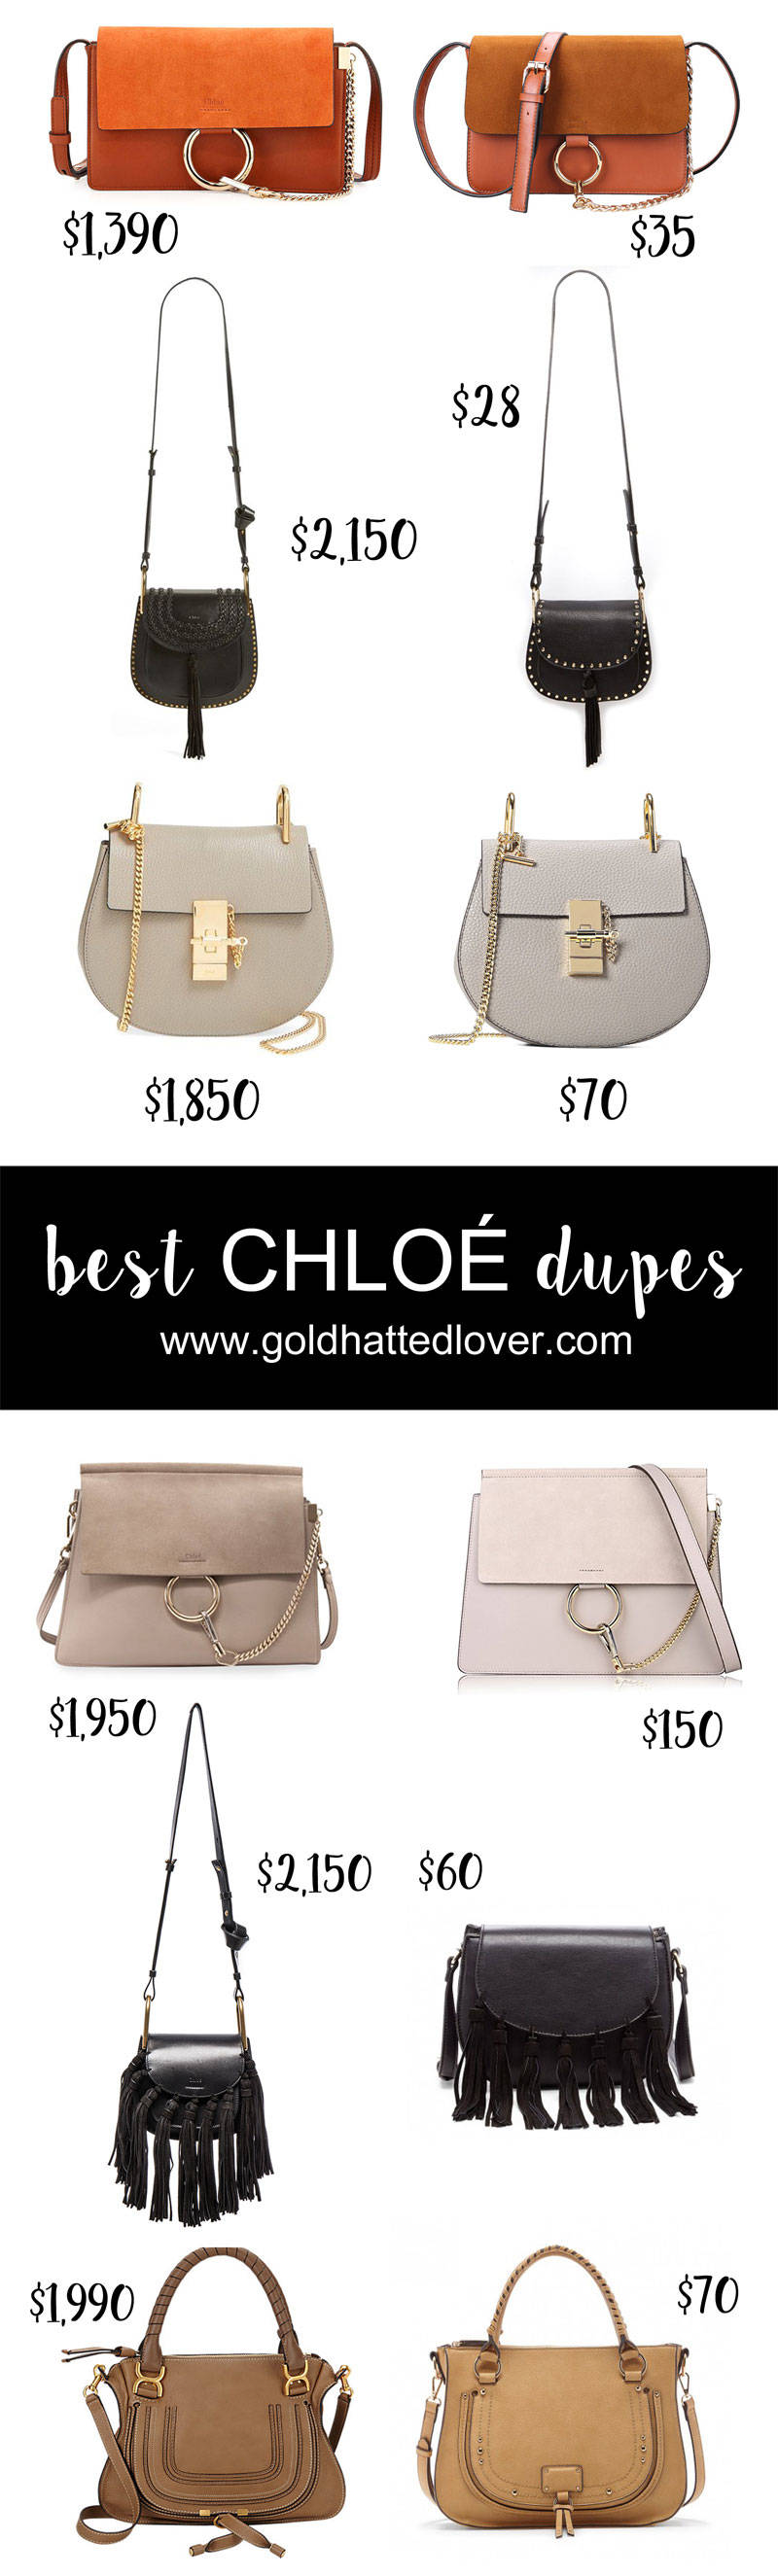 Best Chloé Handbag Dupes | Gold-Hatted Lover